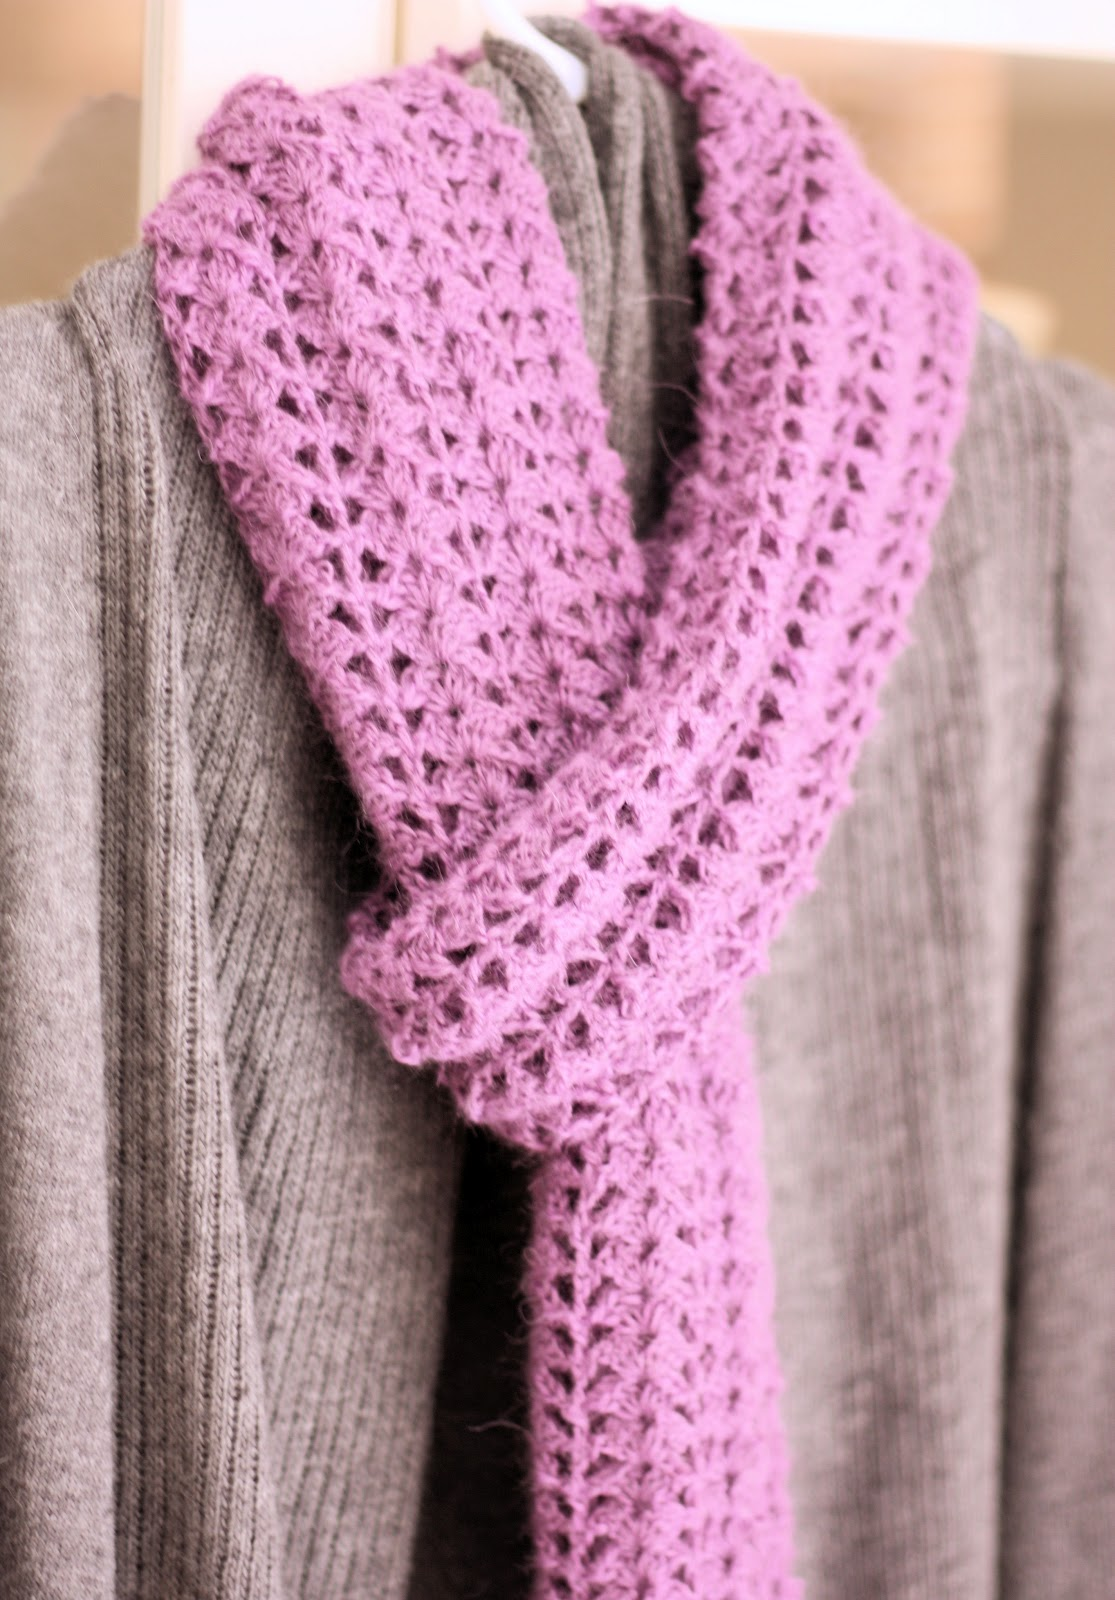 Crochet Lace Pattern For Beginners : Crocheted Scarf {Free Pattern} - A Spoonful of Sugar